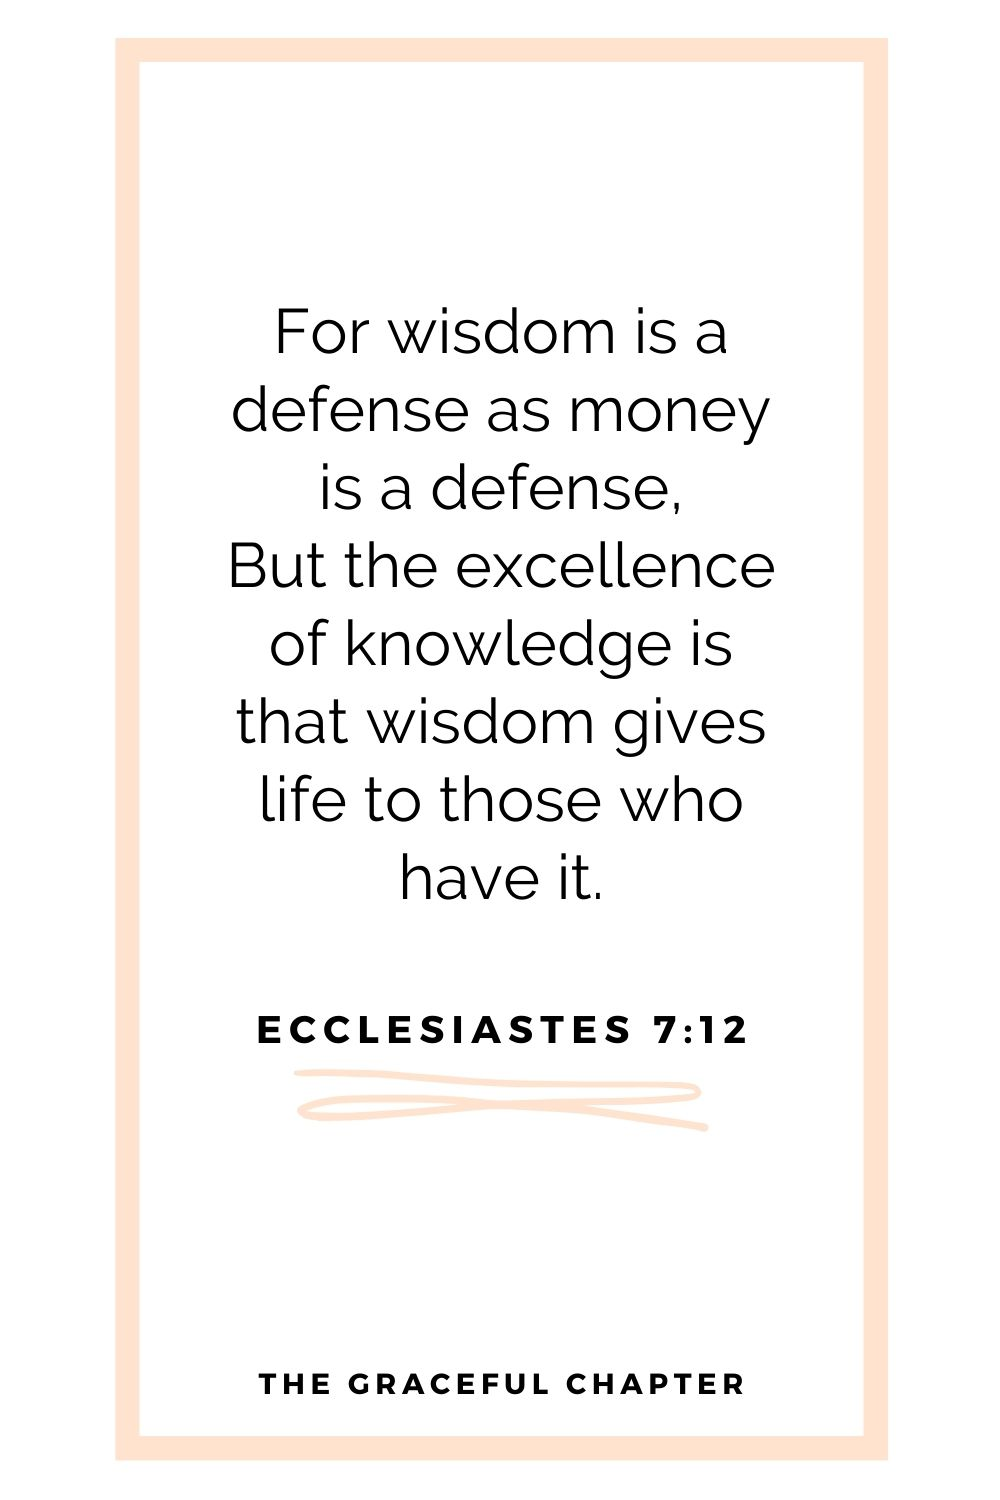 For wisdom is a defense as money is a defense, But the excellence of knowledge is that wisdom gives life to those who have it. Ecclesiastes 7:12